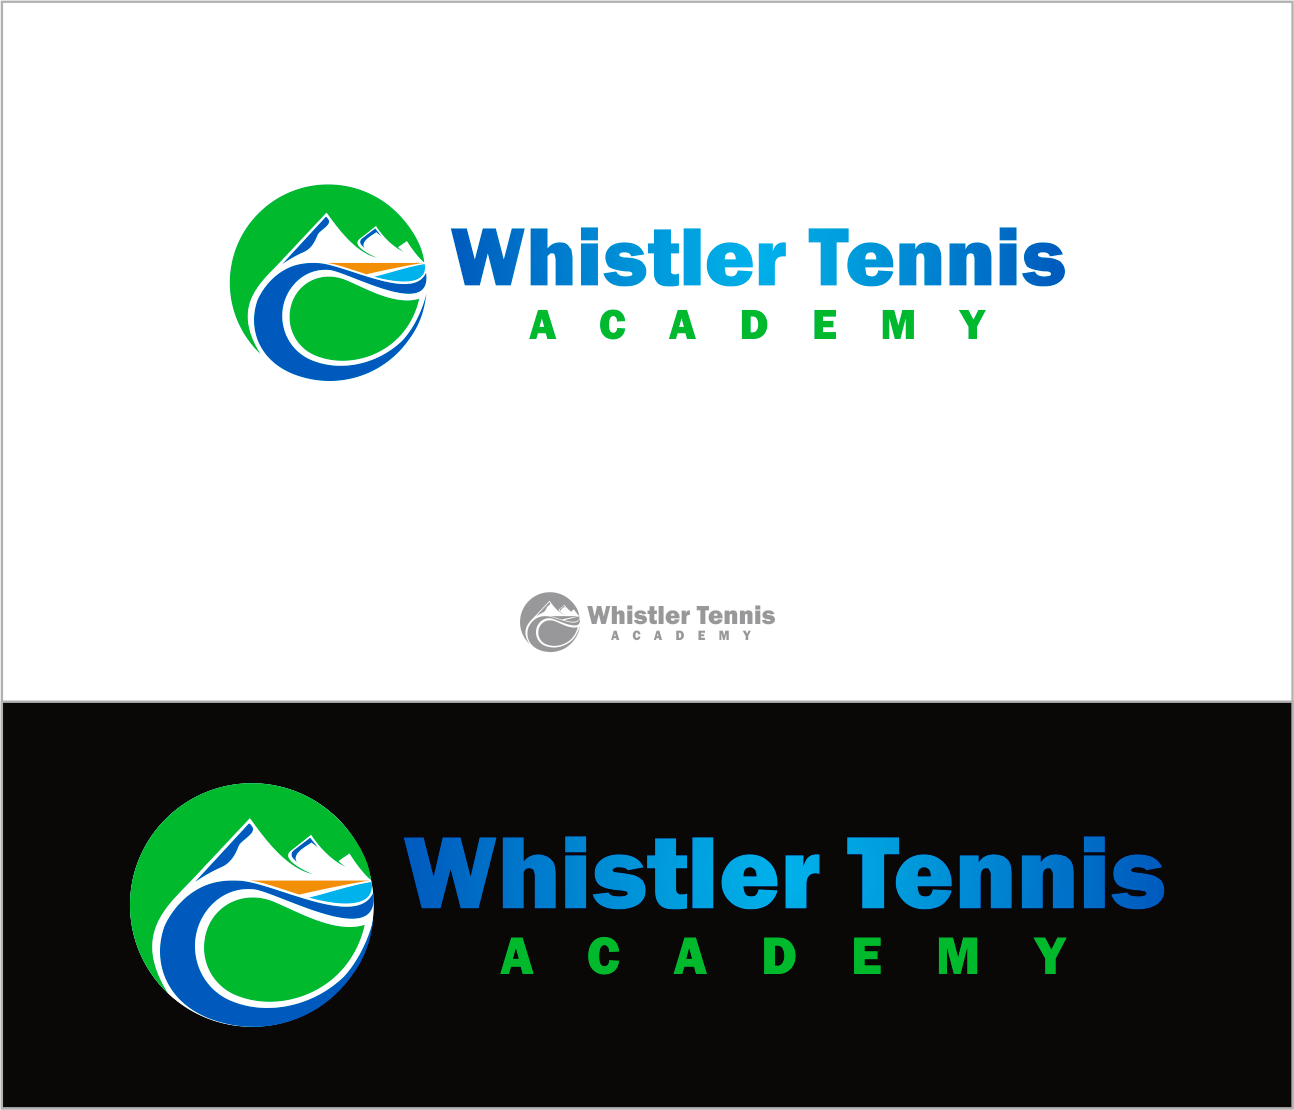 Logo Design by Armada Jamaluddin - Entry No. 241 in the Logo Design Contest Imaginative Logo Design for Whistler Tennis Academy.